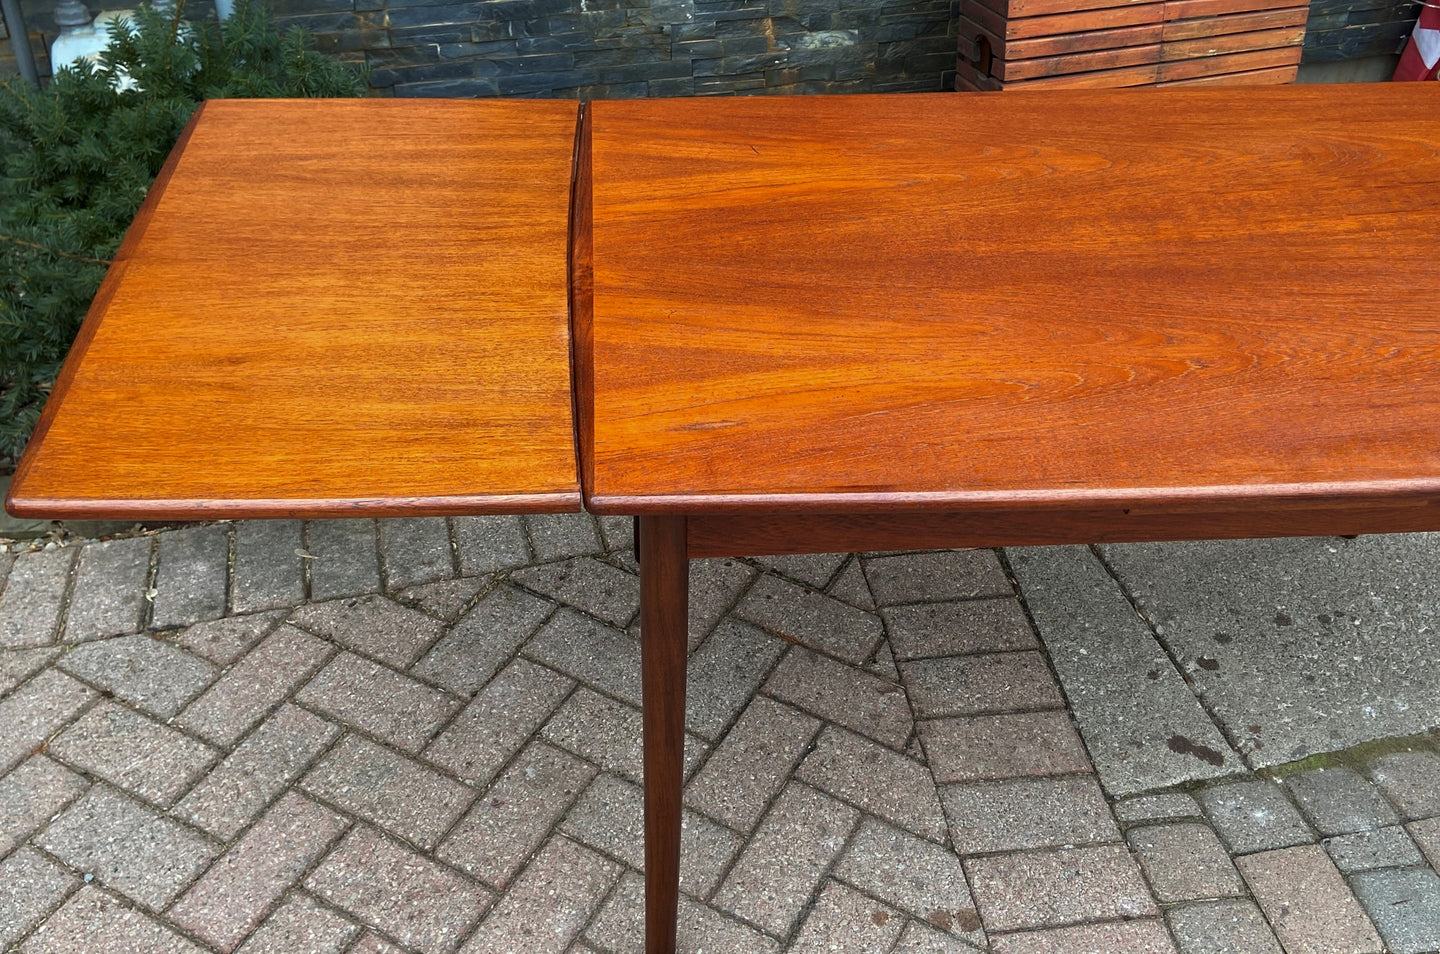 REFINISHED Danish MCM Teak Draw Leaf Table Surfboard shape, PERFECT, 48.5